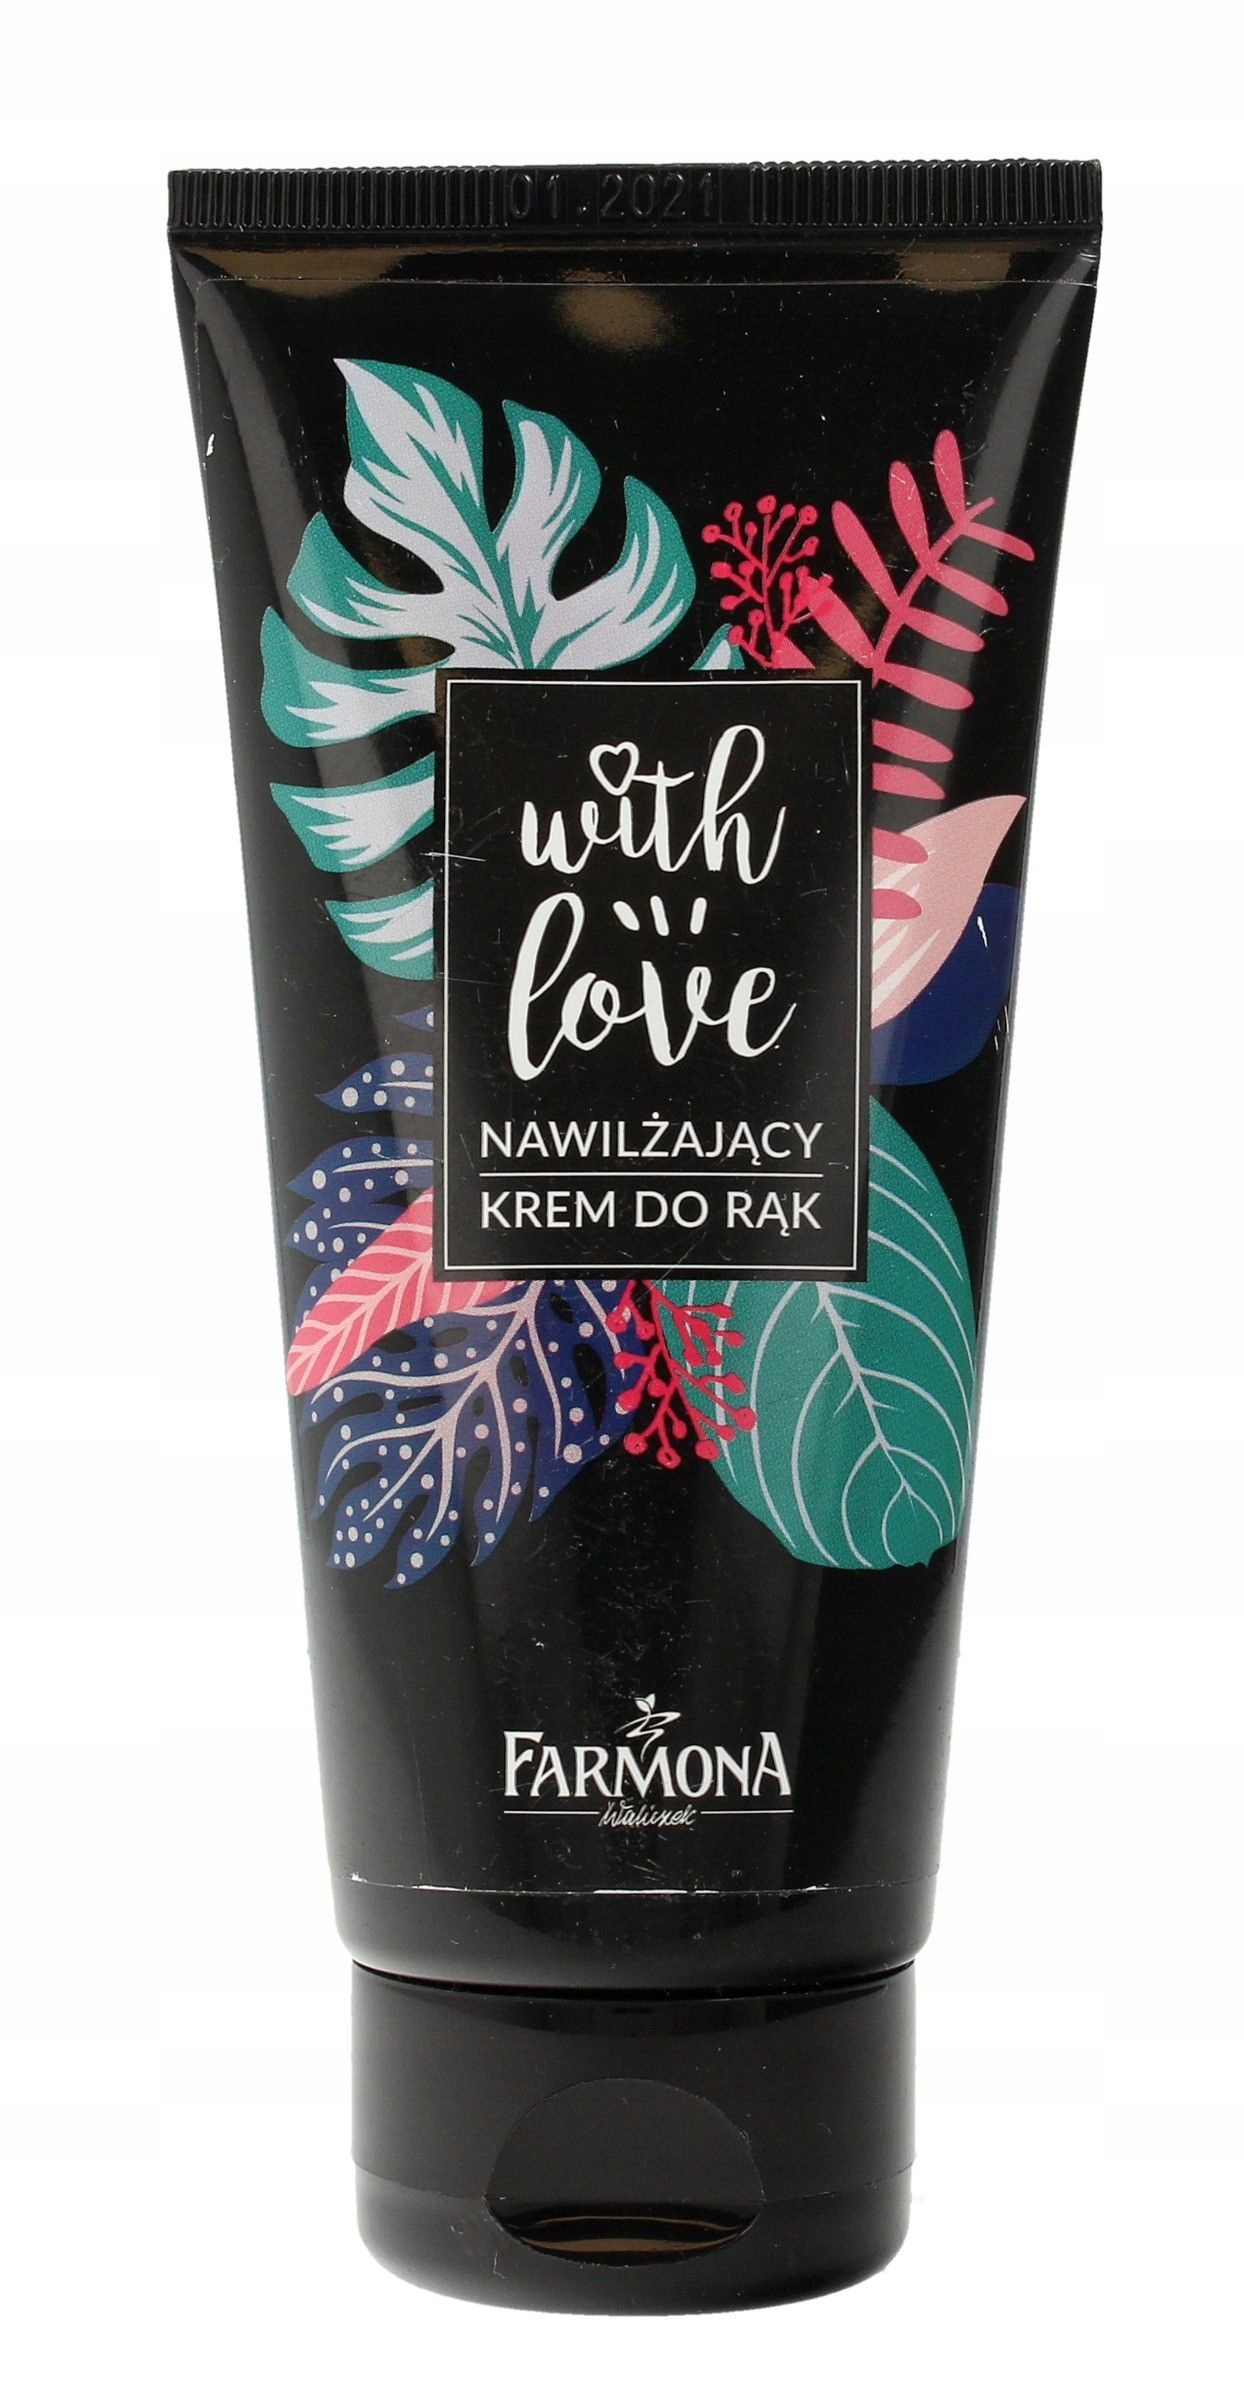 Farmona With Love Krem do rąk nawilżająco-regeneru